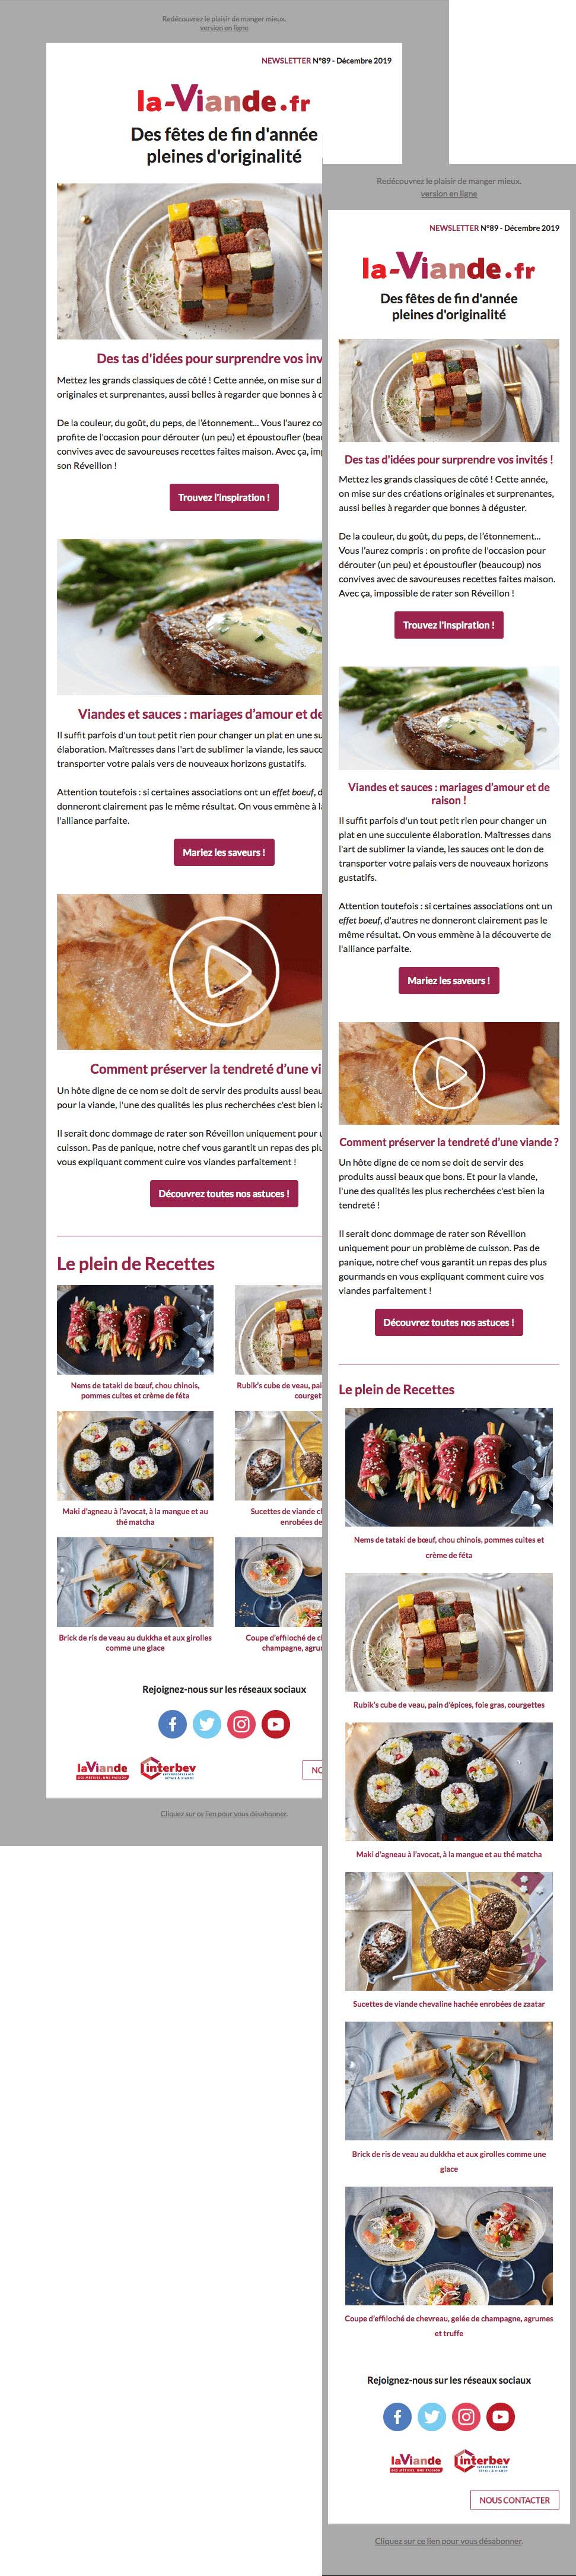 Image of laviande.fr newsletter